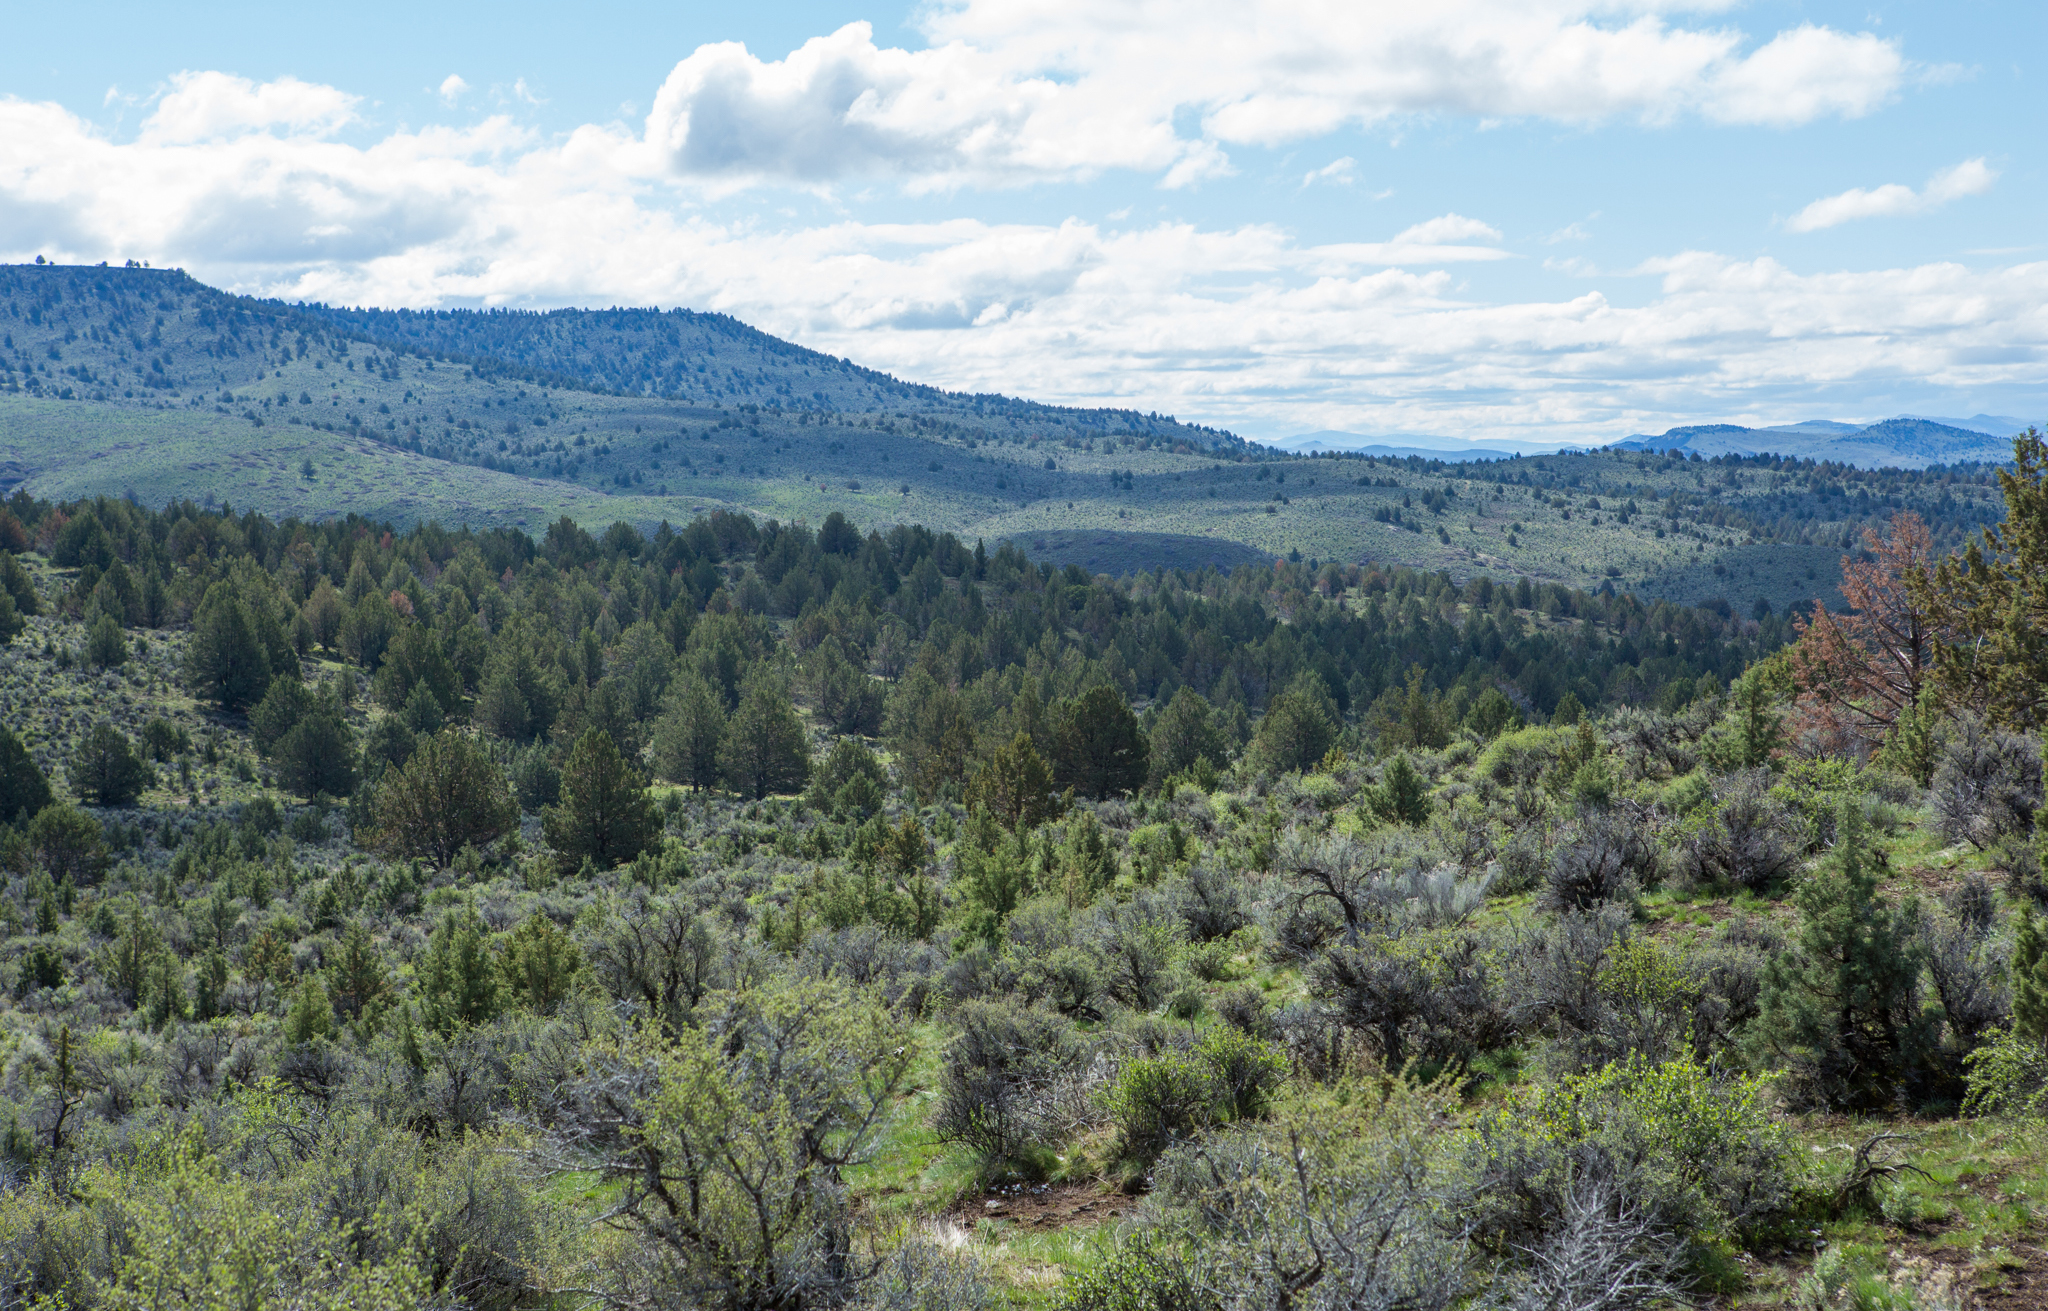 Young juniper trees cover this expanse of what was once open sagebrush and grasses.